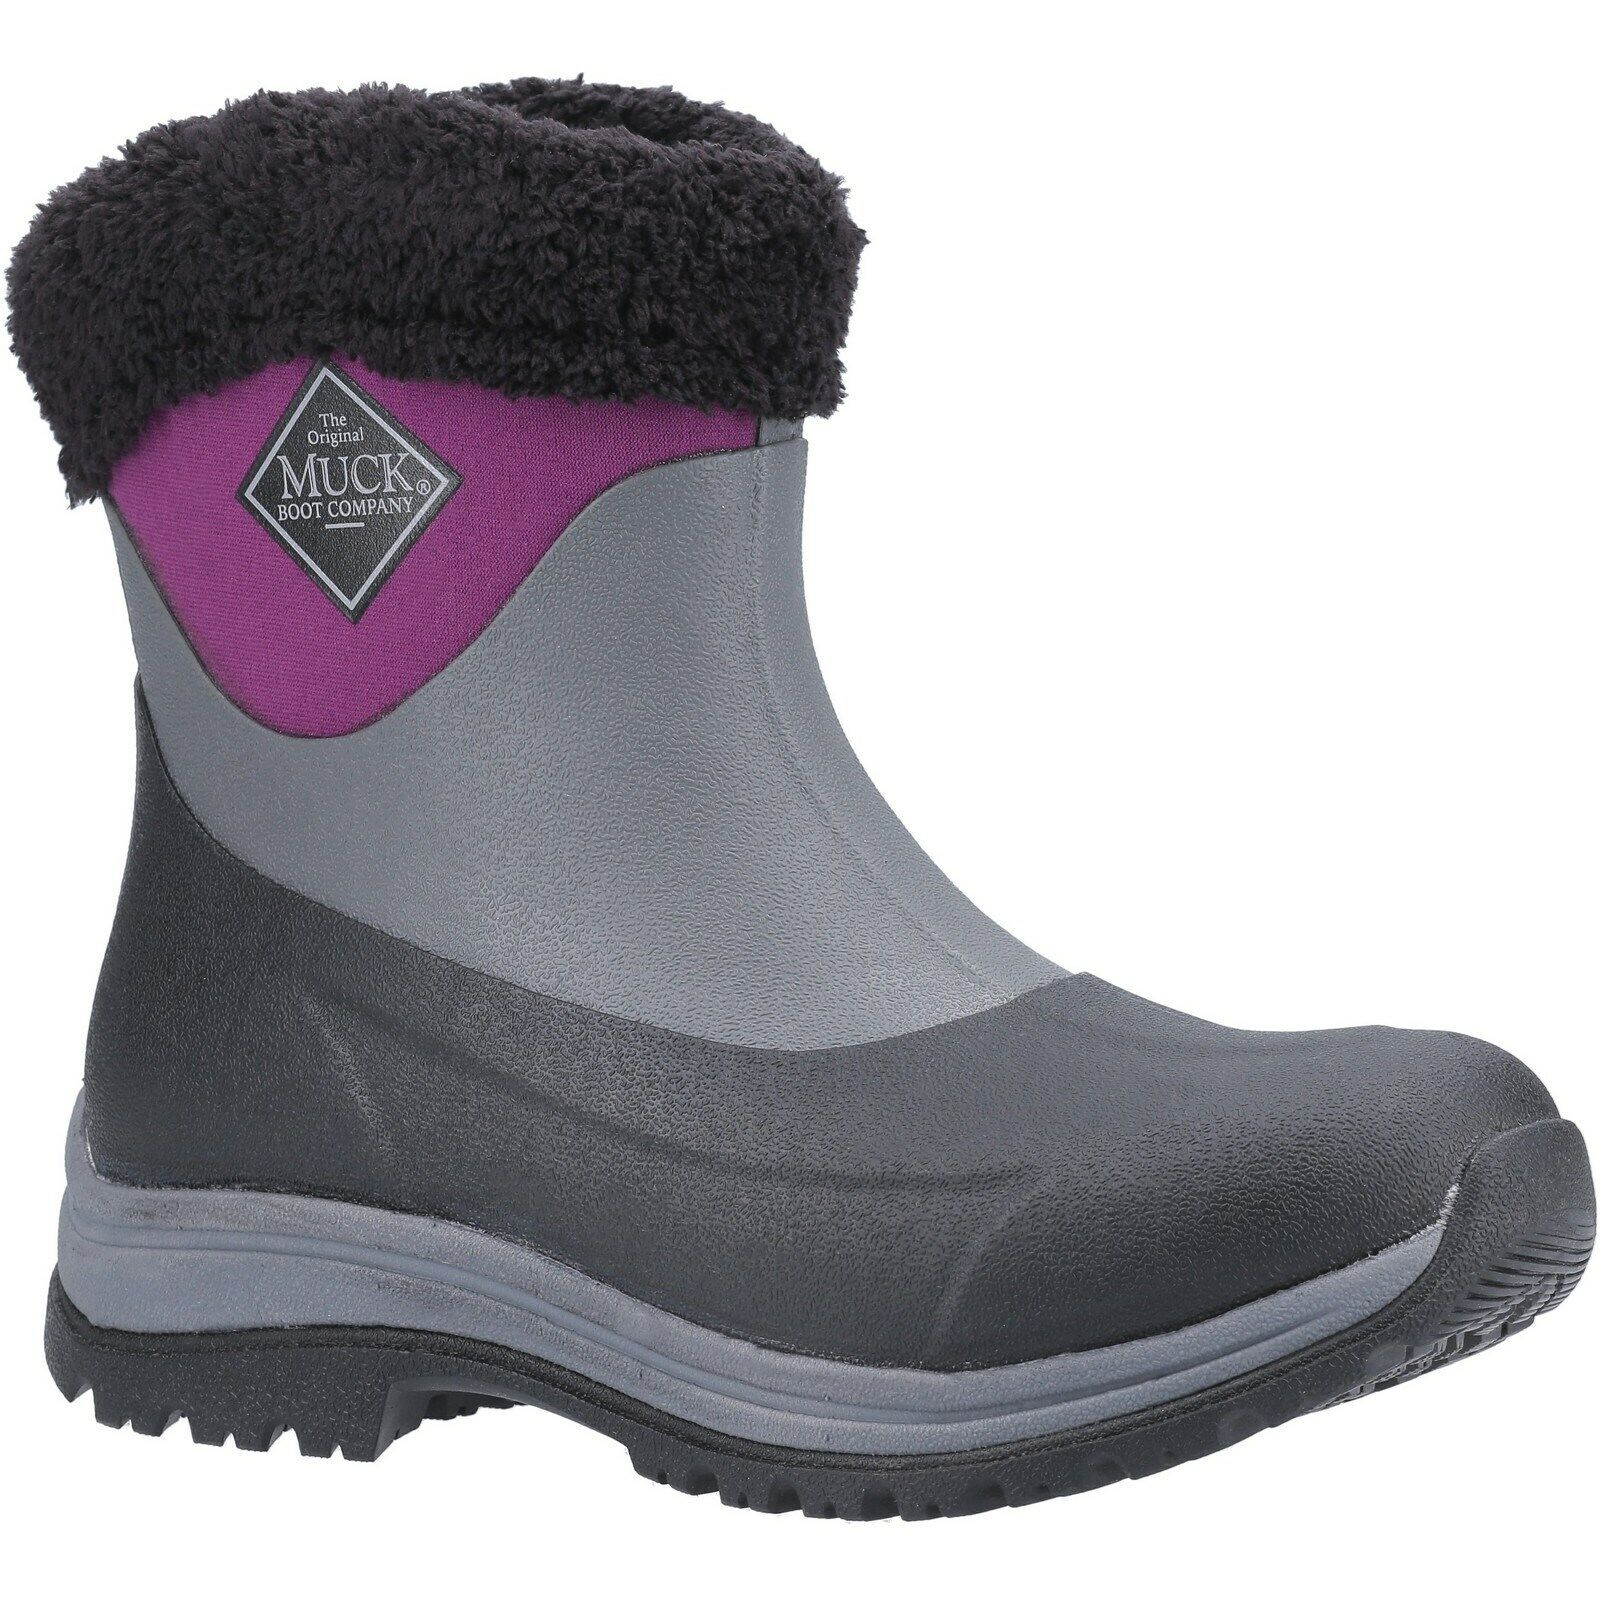 Muck Boots Arctic Apres Winter boots Womens Slip-On Casual S